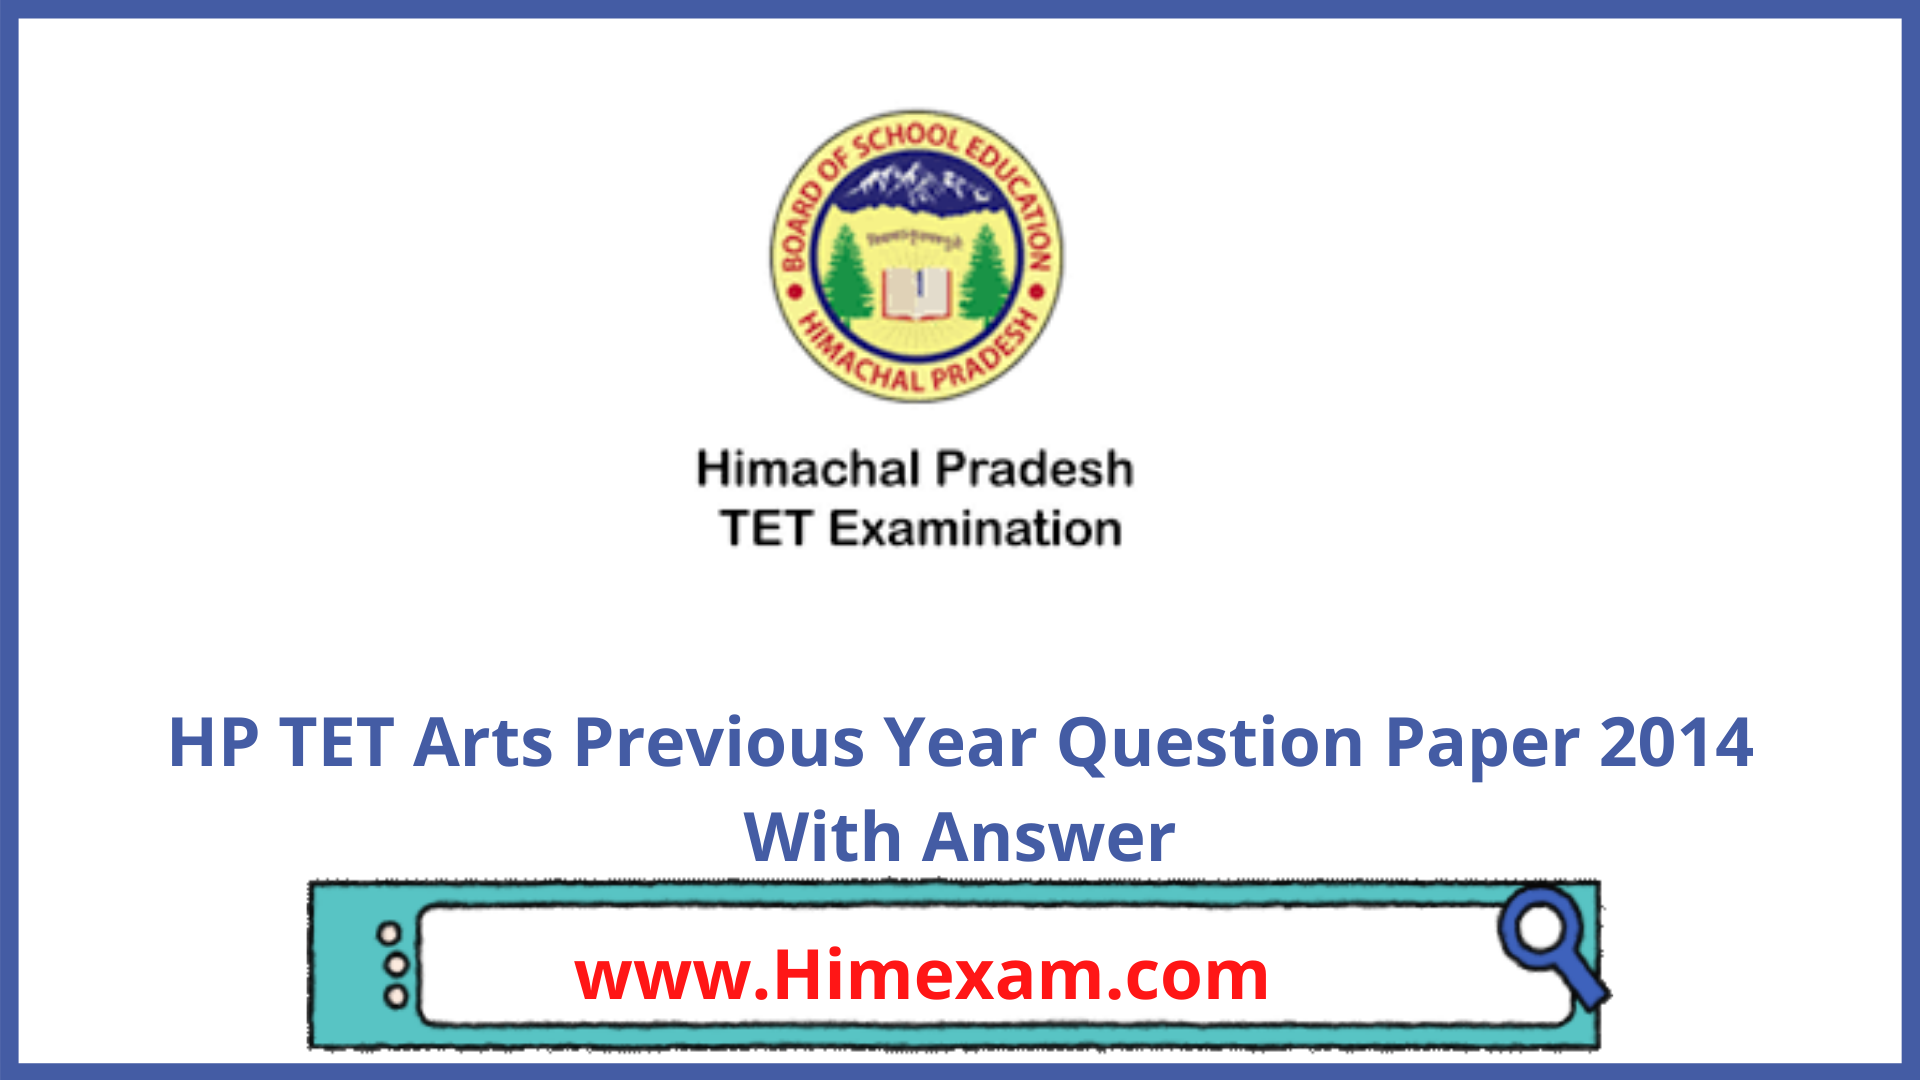 HP TET Arts Previous Year Question Paper 2014 With Answer